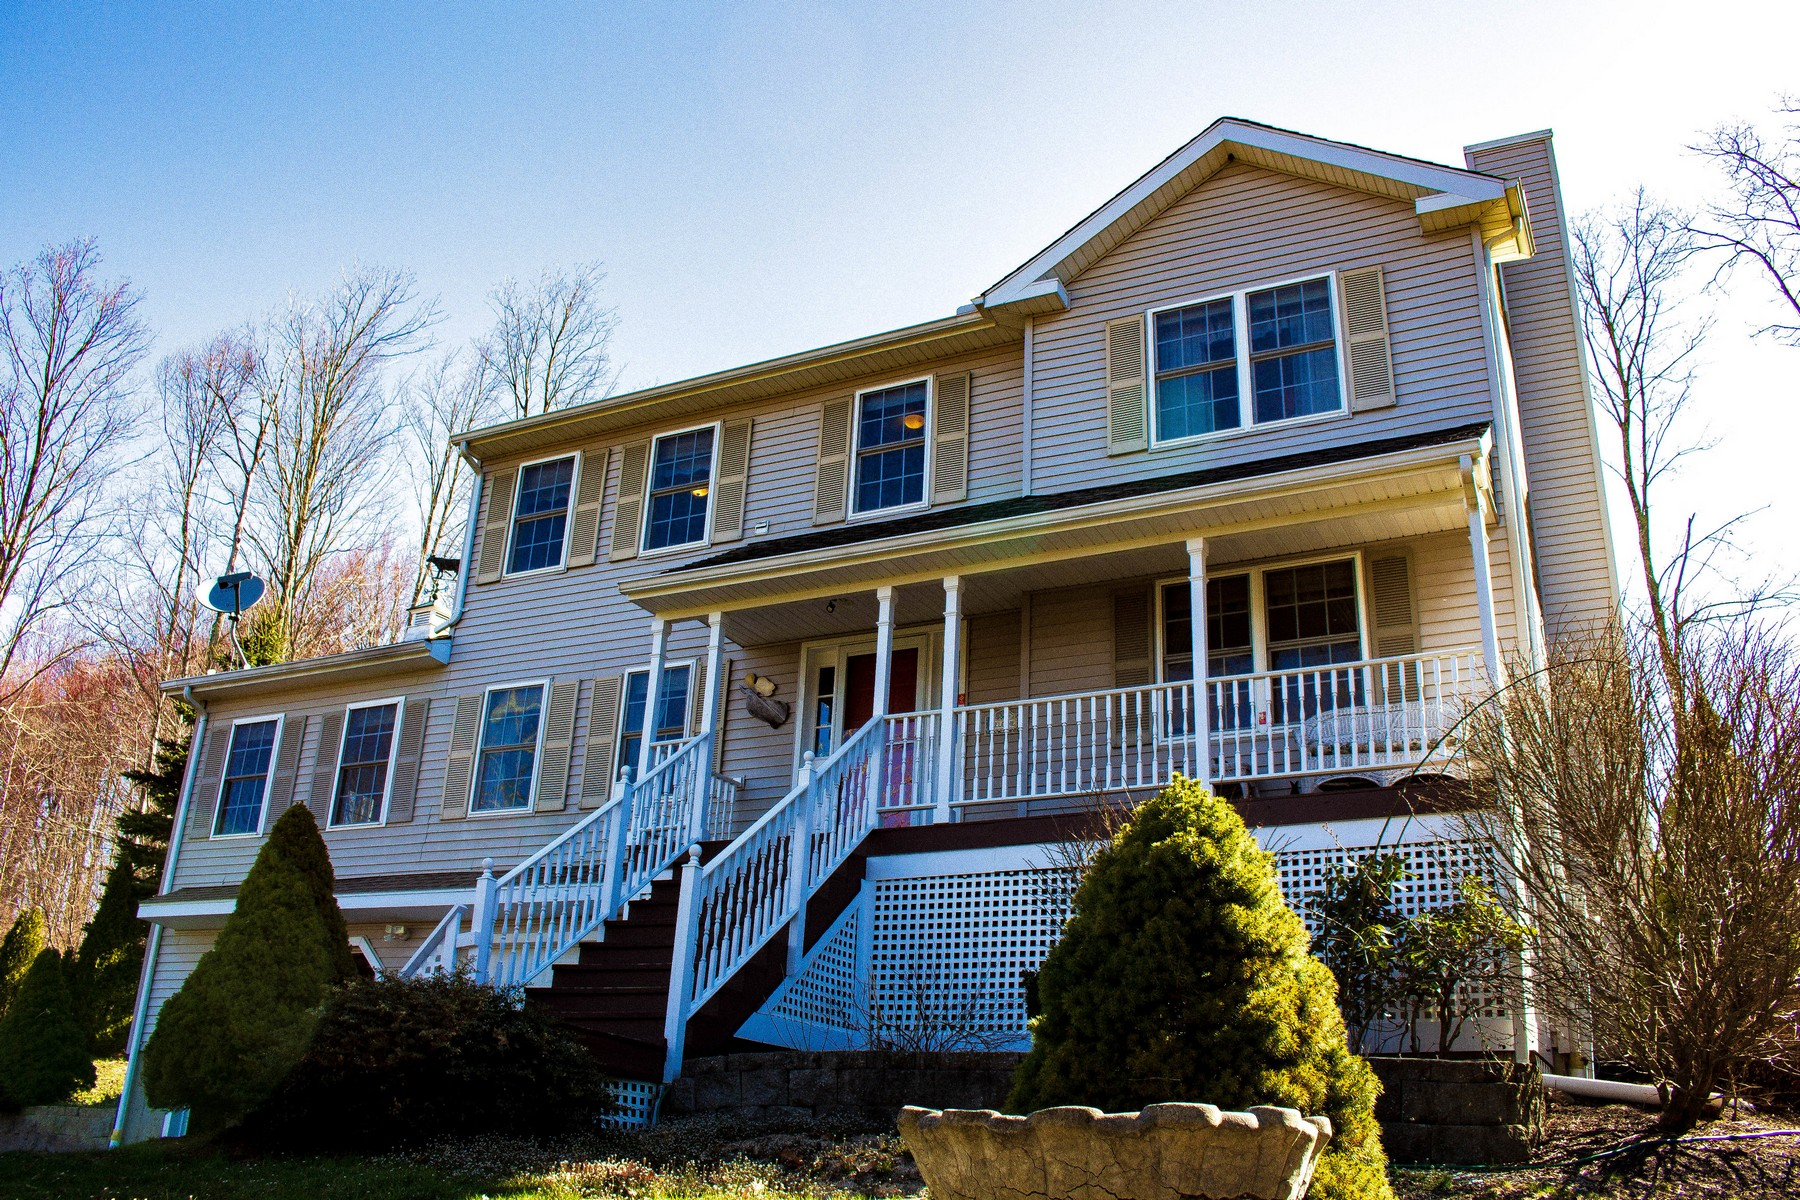 Single Family Home for Sale at Beautiful Views From Your Covered Front Porch 59 Aunt Olive Road Watertown, Connecticut 06795 United States